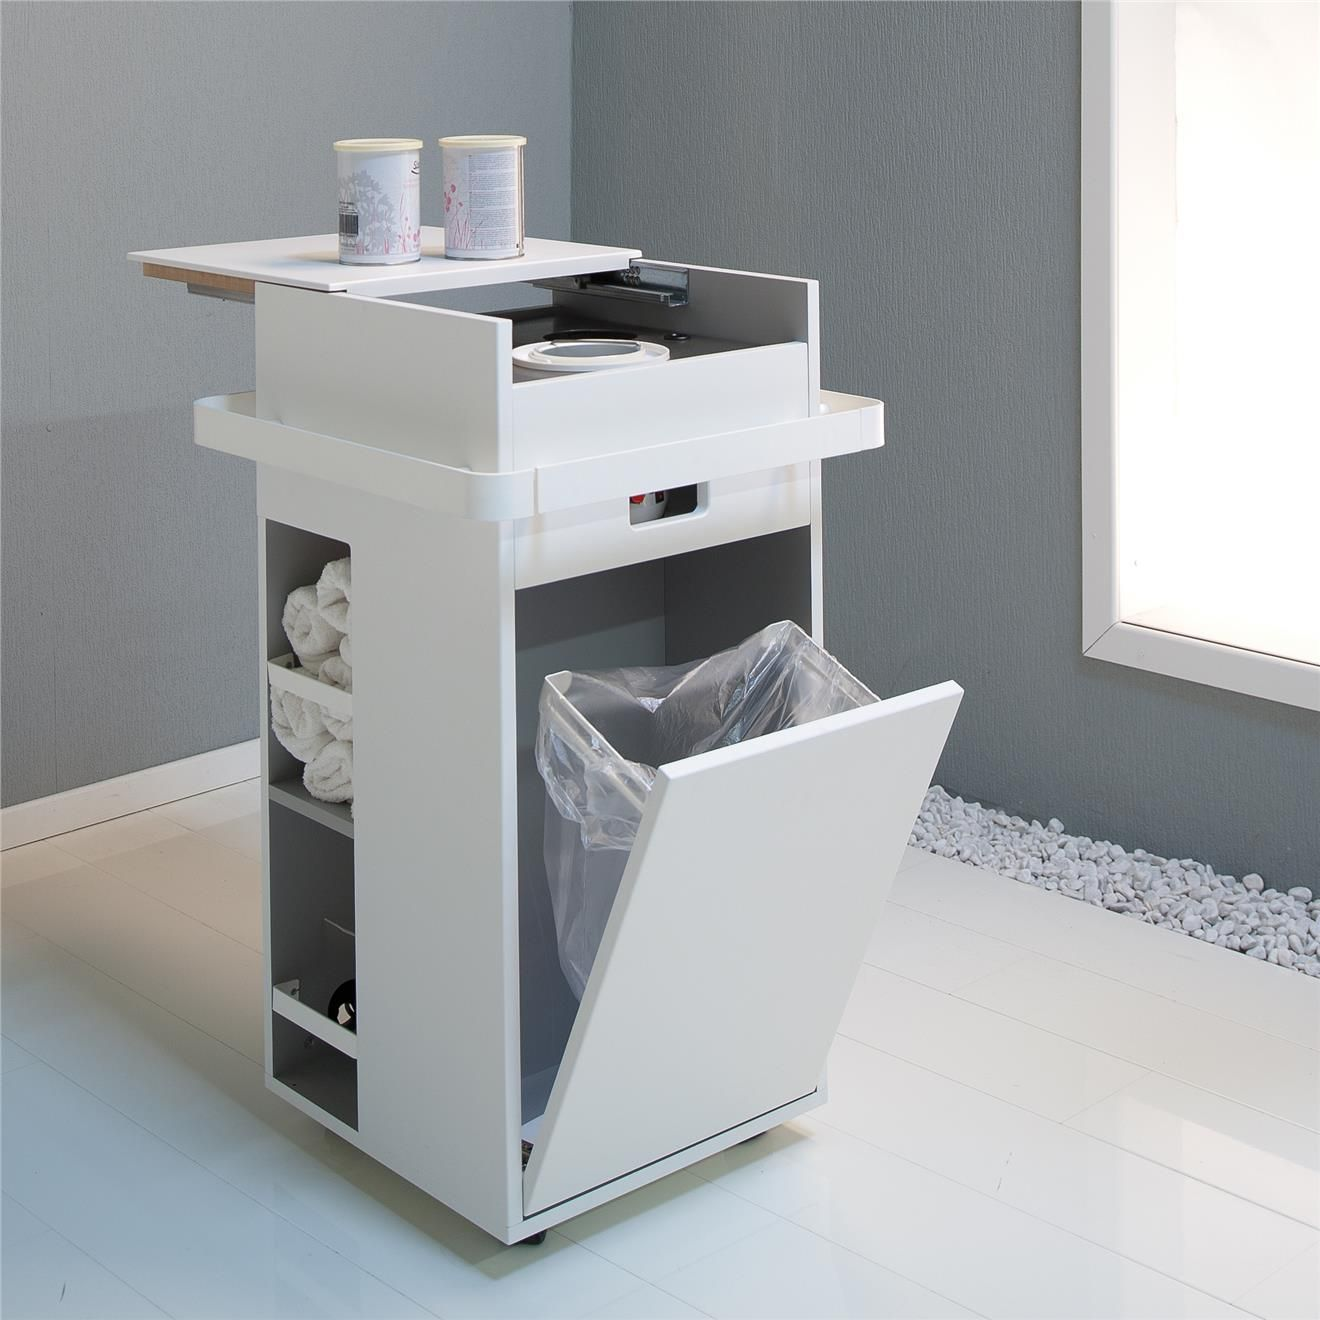 Gharieni MLX Wax Trolley - ideal for Grooming Supplies   More   #estheticianroomideas